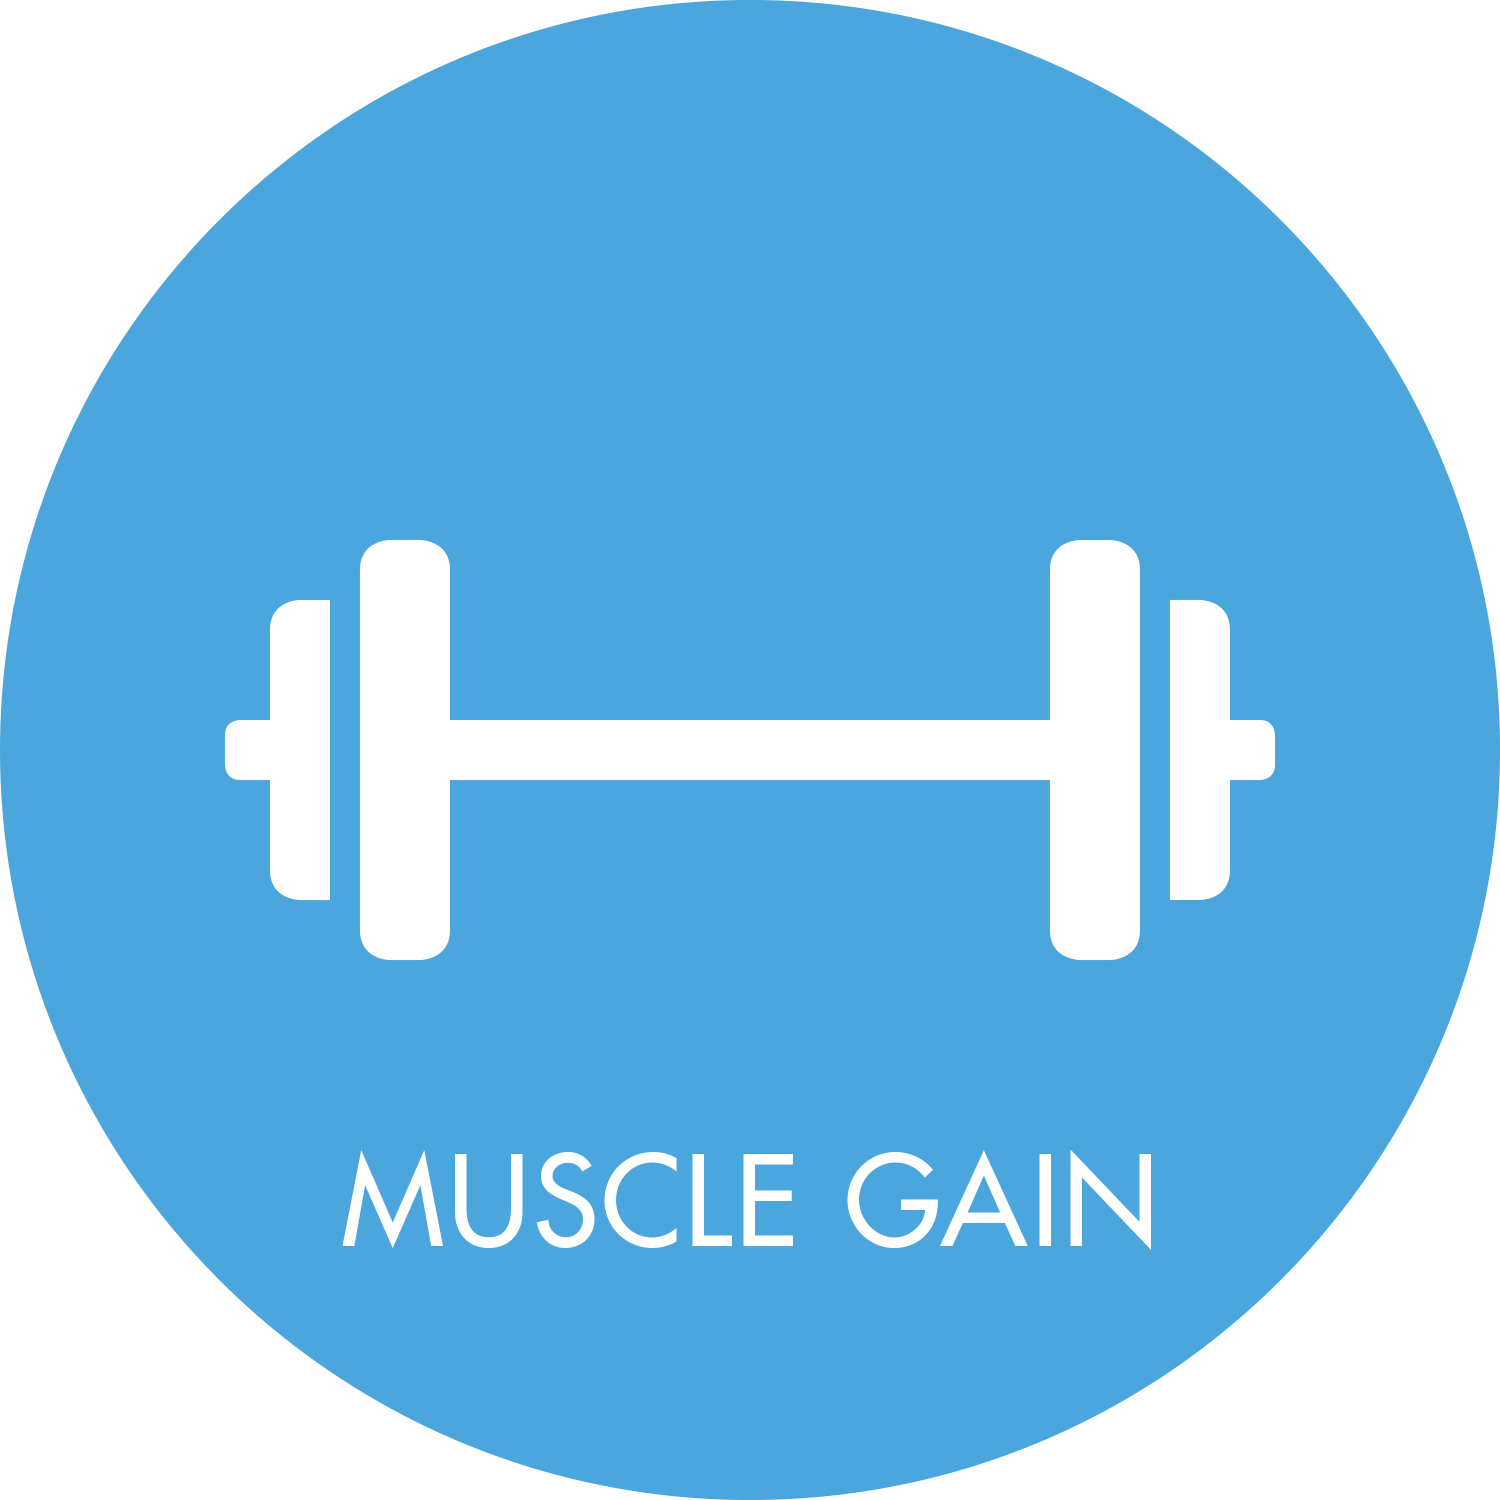 Circle_Icon_Text_Package_Muscle_Gain.png